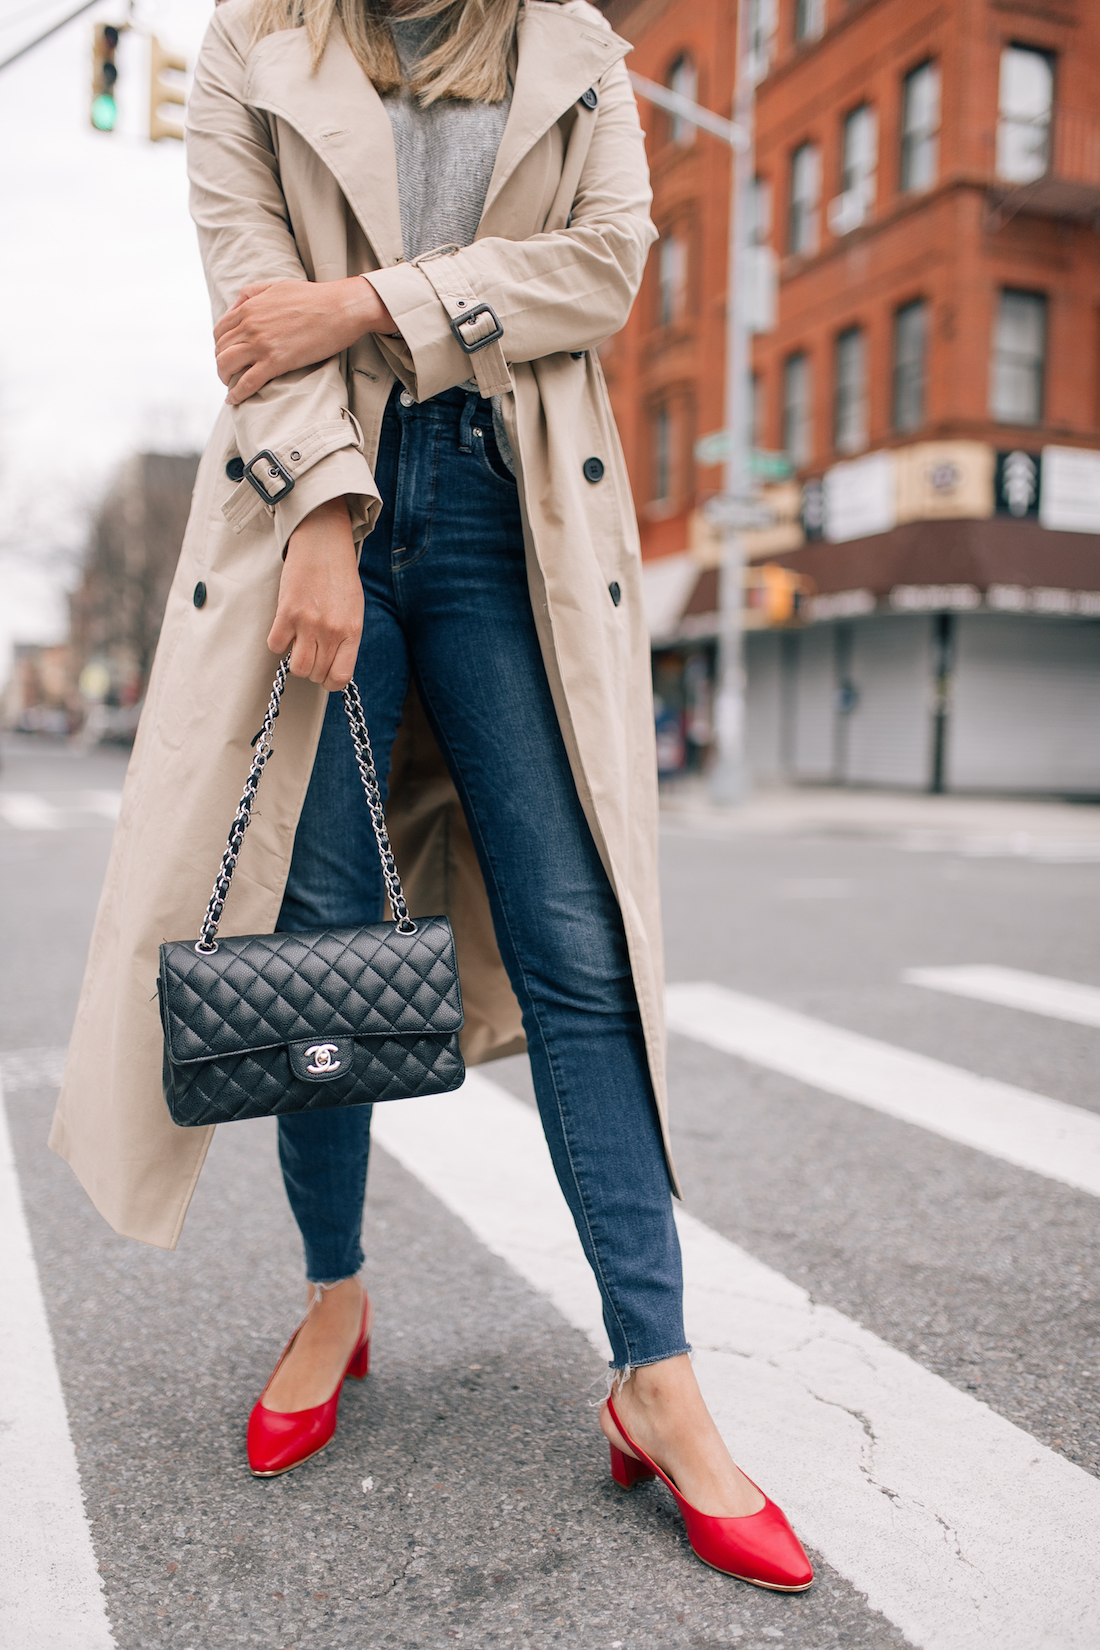 black chanel bag and red pumps